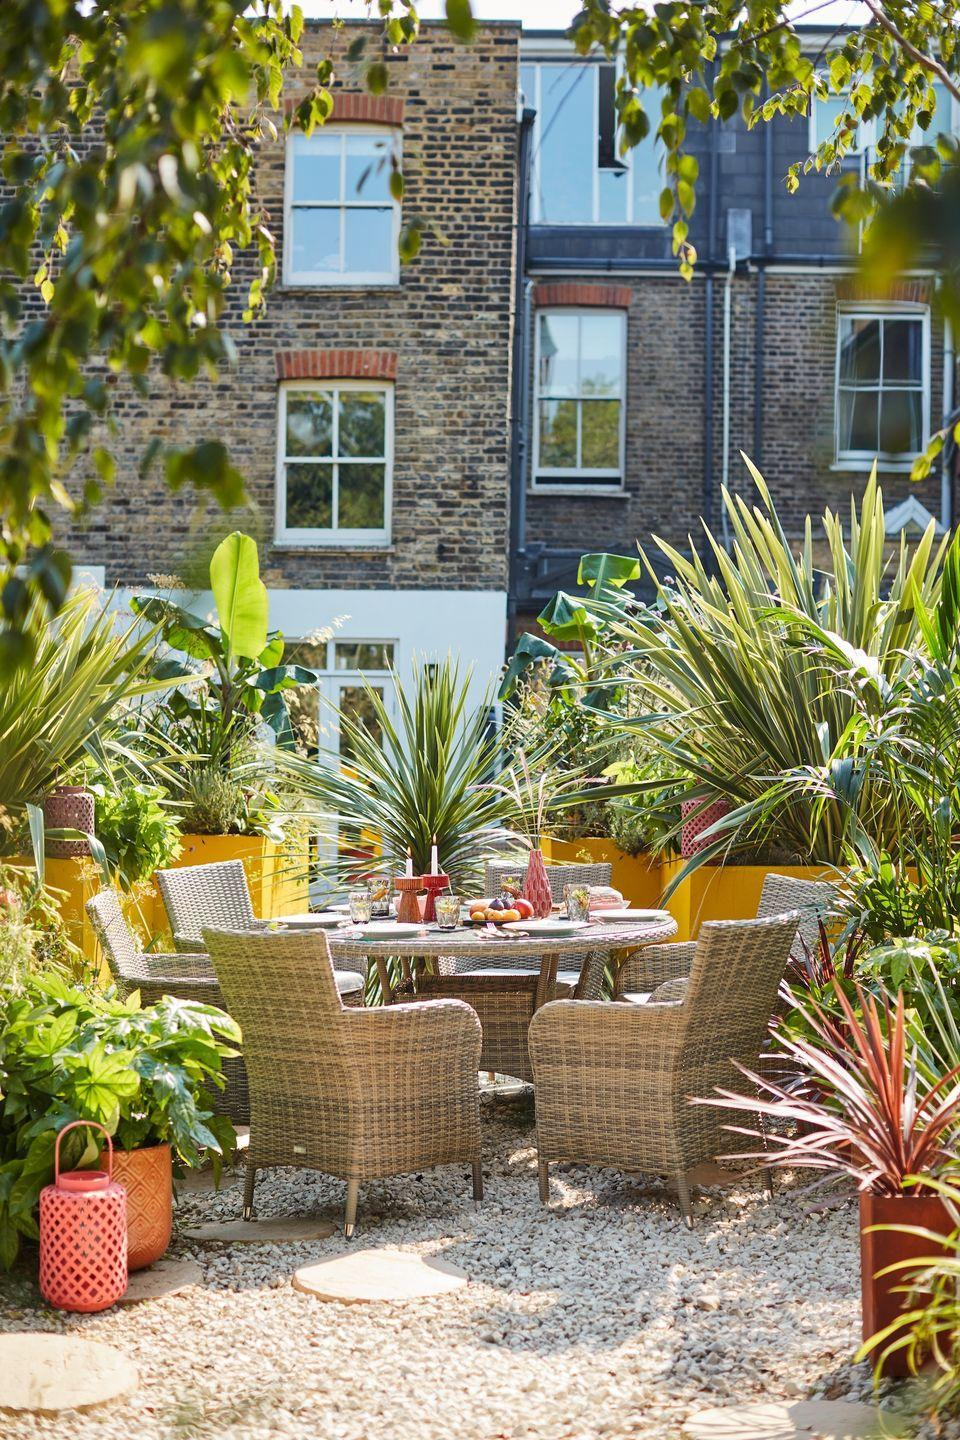 """<p>Rattan furniture sets are trending and they're perfect for outdoor spaces. From <a href=""""https://www.housebeautiful.com/uk/garden/g32181157/bistro-set/"""" rel=""""nofollow noopener"""" target=""""_blank"""" data-ylk=""""slk:bistro sets"""" class=""""link rapid-noclick-resp"""">bistro sets</a> to cosy corner sofas, stylish rattan is what every garden needs this year. </p><p>'Last year saw a huge spike in demand for rattan garden furniture, so it's no surprise that the trend has returned this year,' says Ryan Schwarze, Head of <a href=""""https://www.luxuryrattan.com/"""" rel=""""nofollow noopener"""" target=""""_blank"""" data-ylk=""""slk:Luxury Rattan"""" class=""""link rapid-noclick-resp"""">Luxury Rattan</a>.</p><p>'Modern rattan sets come in a variety of sizes and colours, they're also durable against the unpredictable British weather, making them a great high-quality, on-trend furniture option that will help you prepare your garden for summer in an instant.'</p><p><a href=""""https://www.dobbies.com/"""" rel=""""nofollow noopener"""" target=""""_blank"""" data-ylk=""""slk:Shop the full look at Dobbies"""" class=""""link rapid-noclick-resp"""">Shop the full look at Dobbies</a> </p><p><a class=""""link rapid-noclick-resp"""" href=""""https://www.housebeautiful.com/uk/garden/g21058049/outdoor-garden-furniture-sets/"""" rel=""""nofollow noopener"""" target=""""_blank"""" data-ylk=""""slk:READ MORE: BEST GARDEN FURNITURE"""">READ MORE: BEST GARDEN FURNITURE</a></p>"""